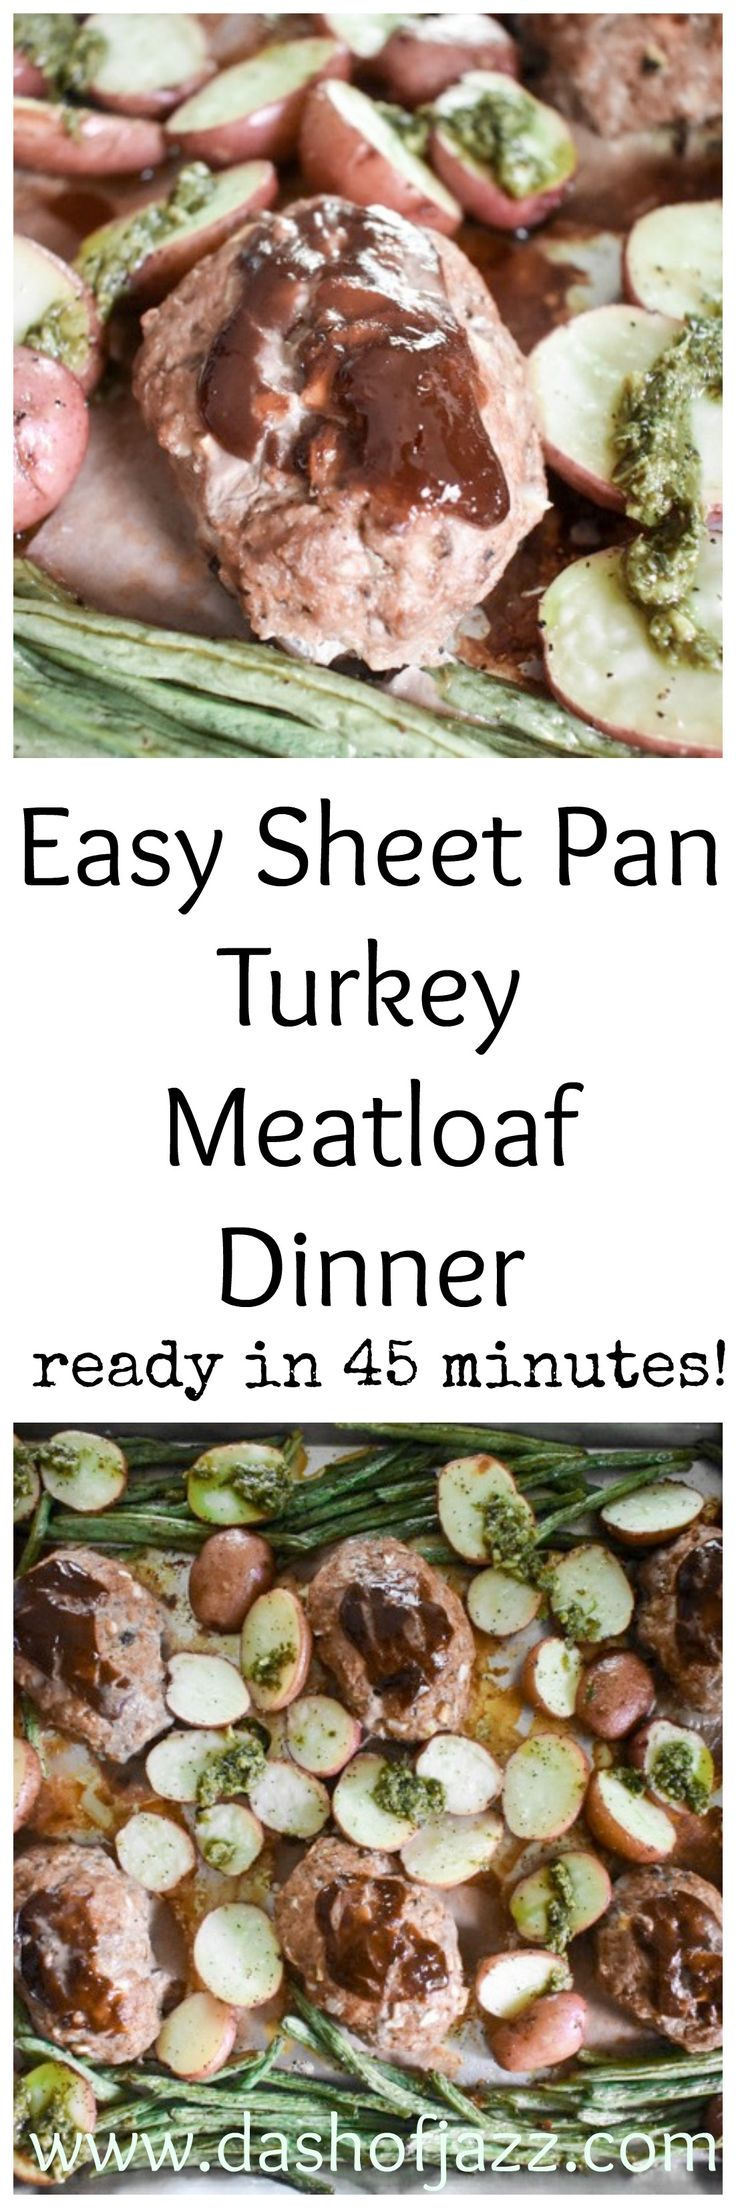 Easy Sheet Pan Turkey Meatloaf Dinner is a one pan meal with mini meat loaves, pesto potatoes, and tender green beans made in under 45 minutes! Dash of Jazz